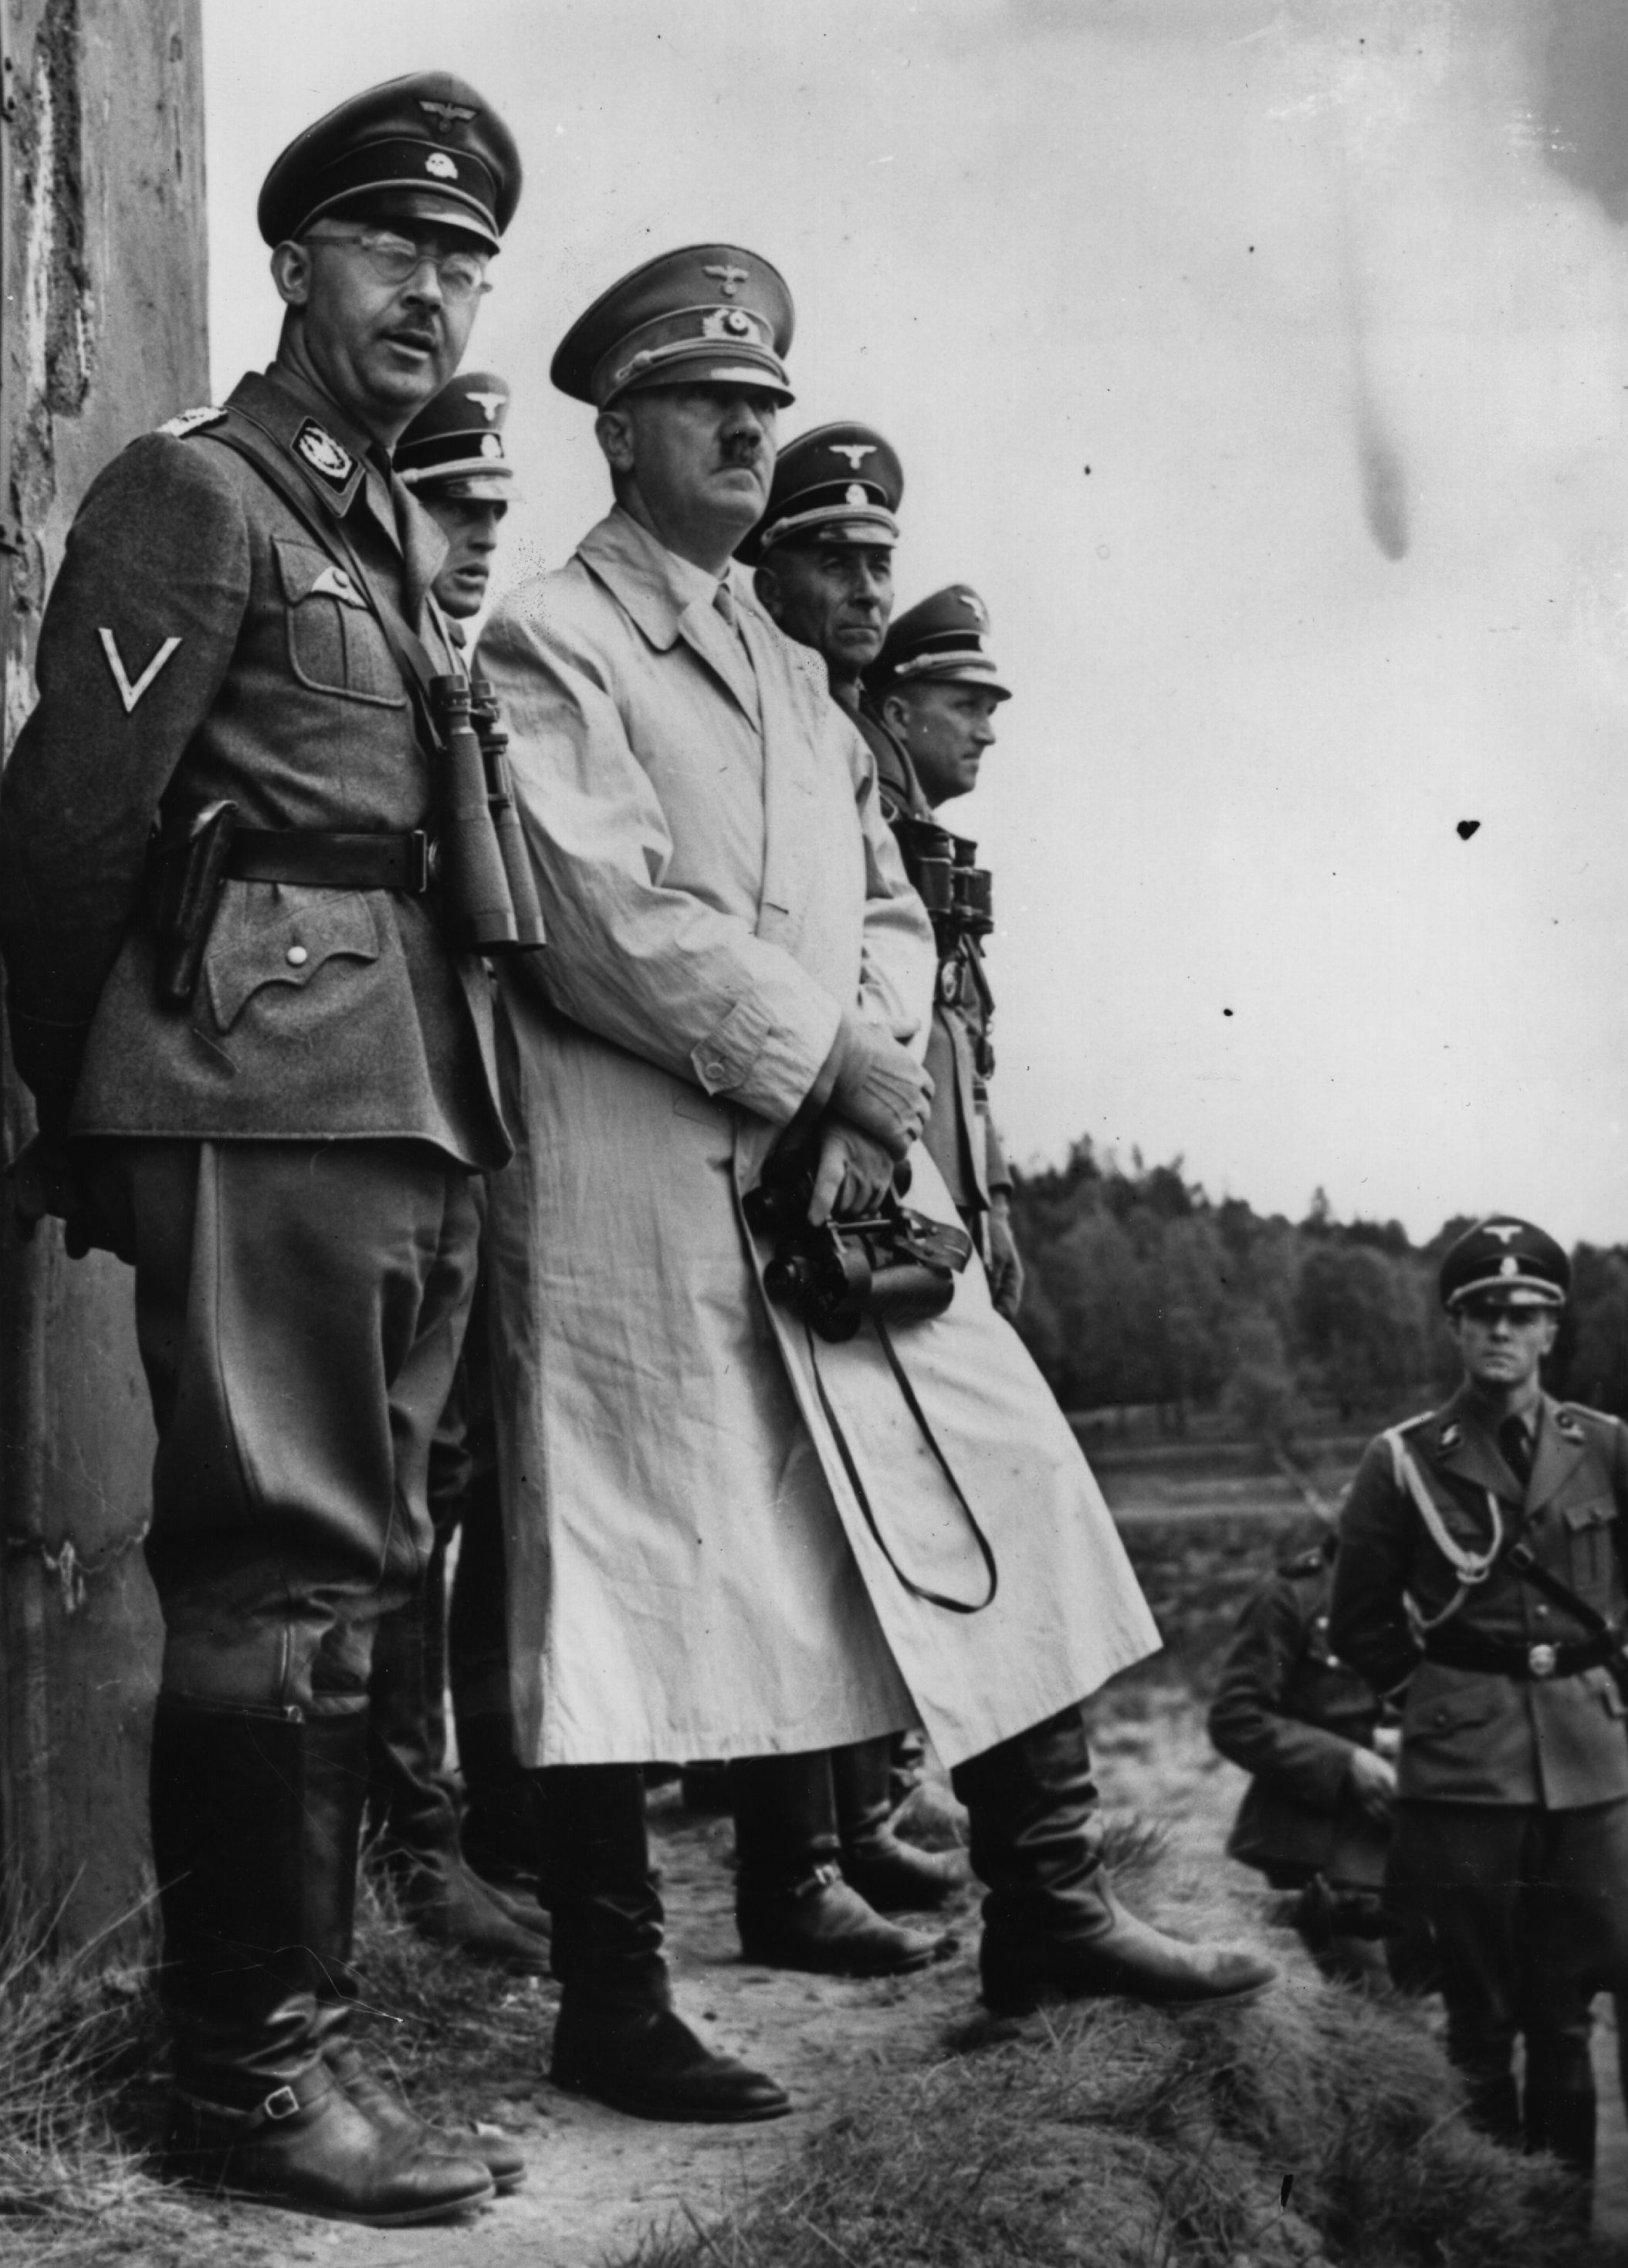 Heinrich Himmler's Private Letters Published In German Newspaper